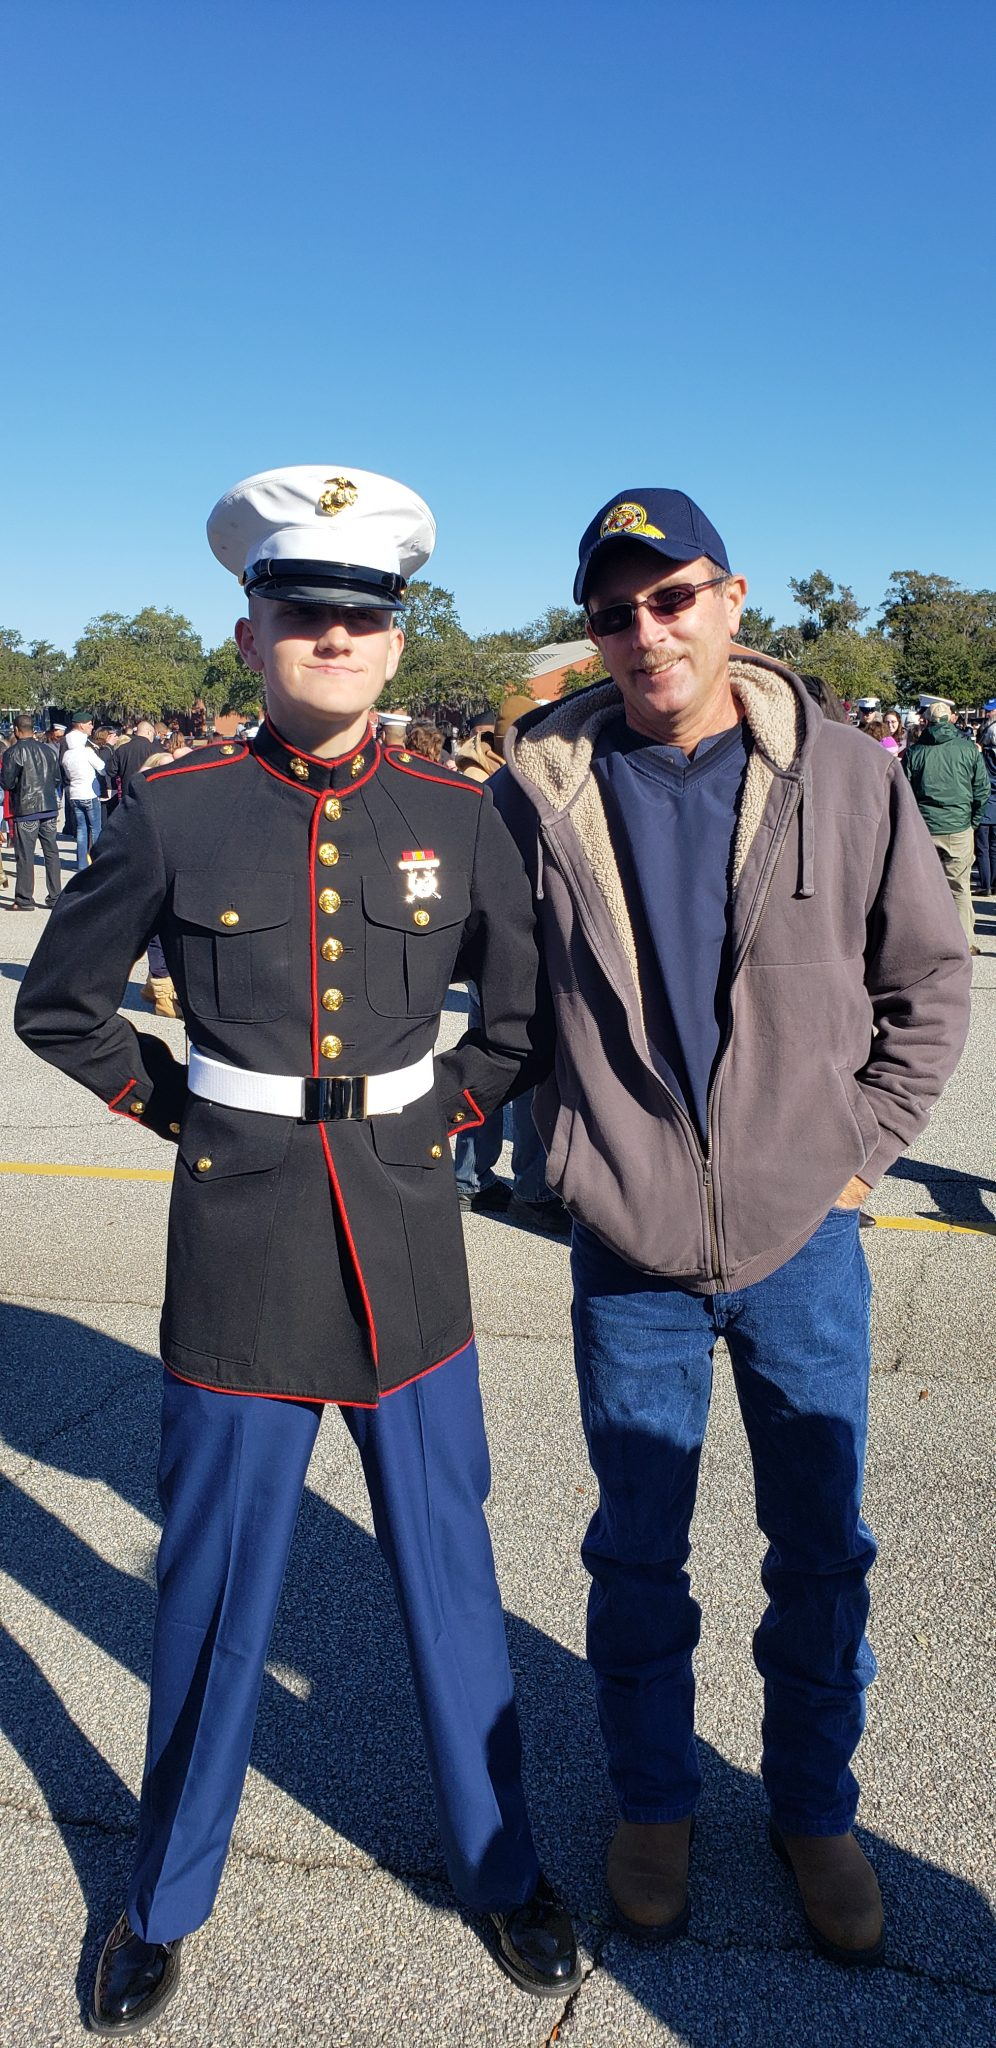 Our son graduated from Paris Island he had just become USMarine on Jan 25. 2019 His father and I were so proud of that kid ❤️